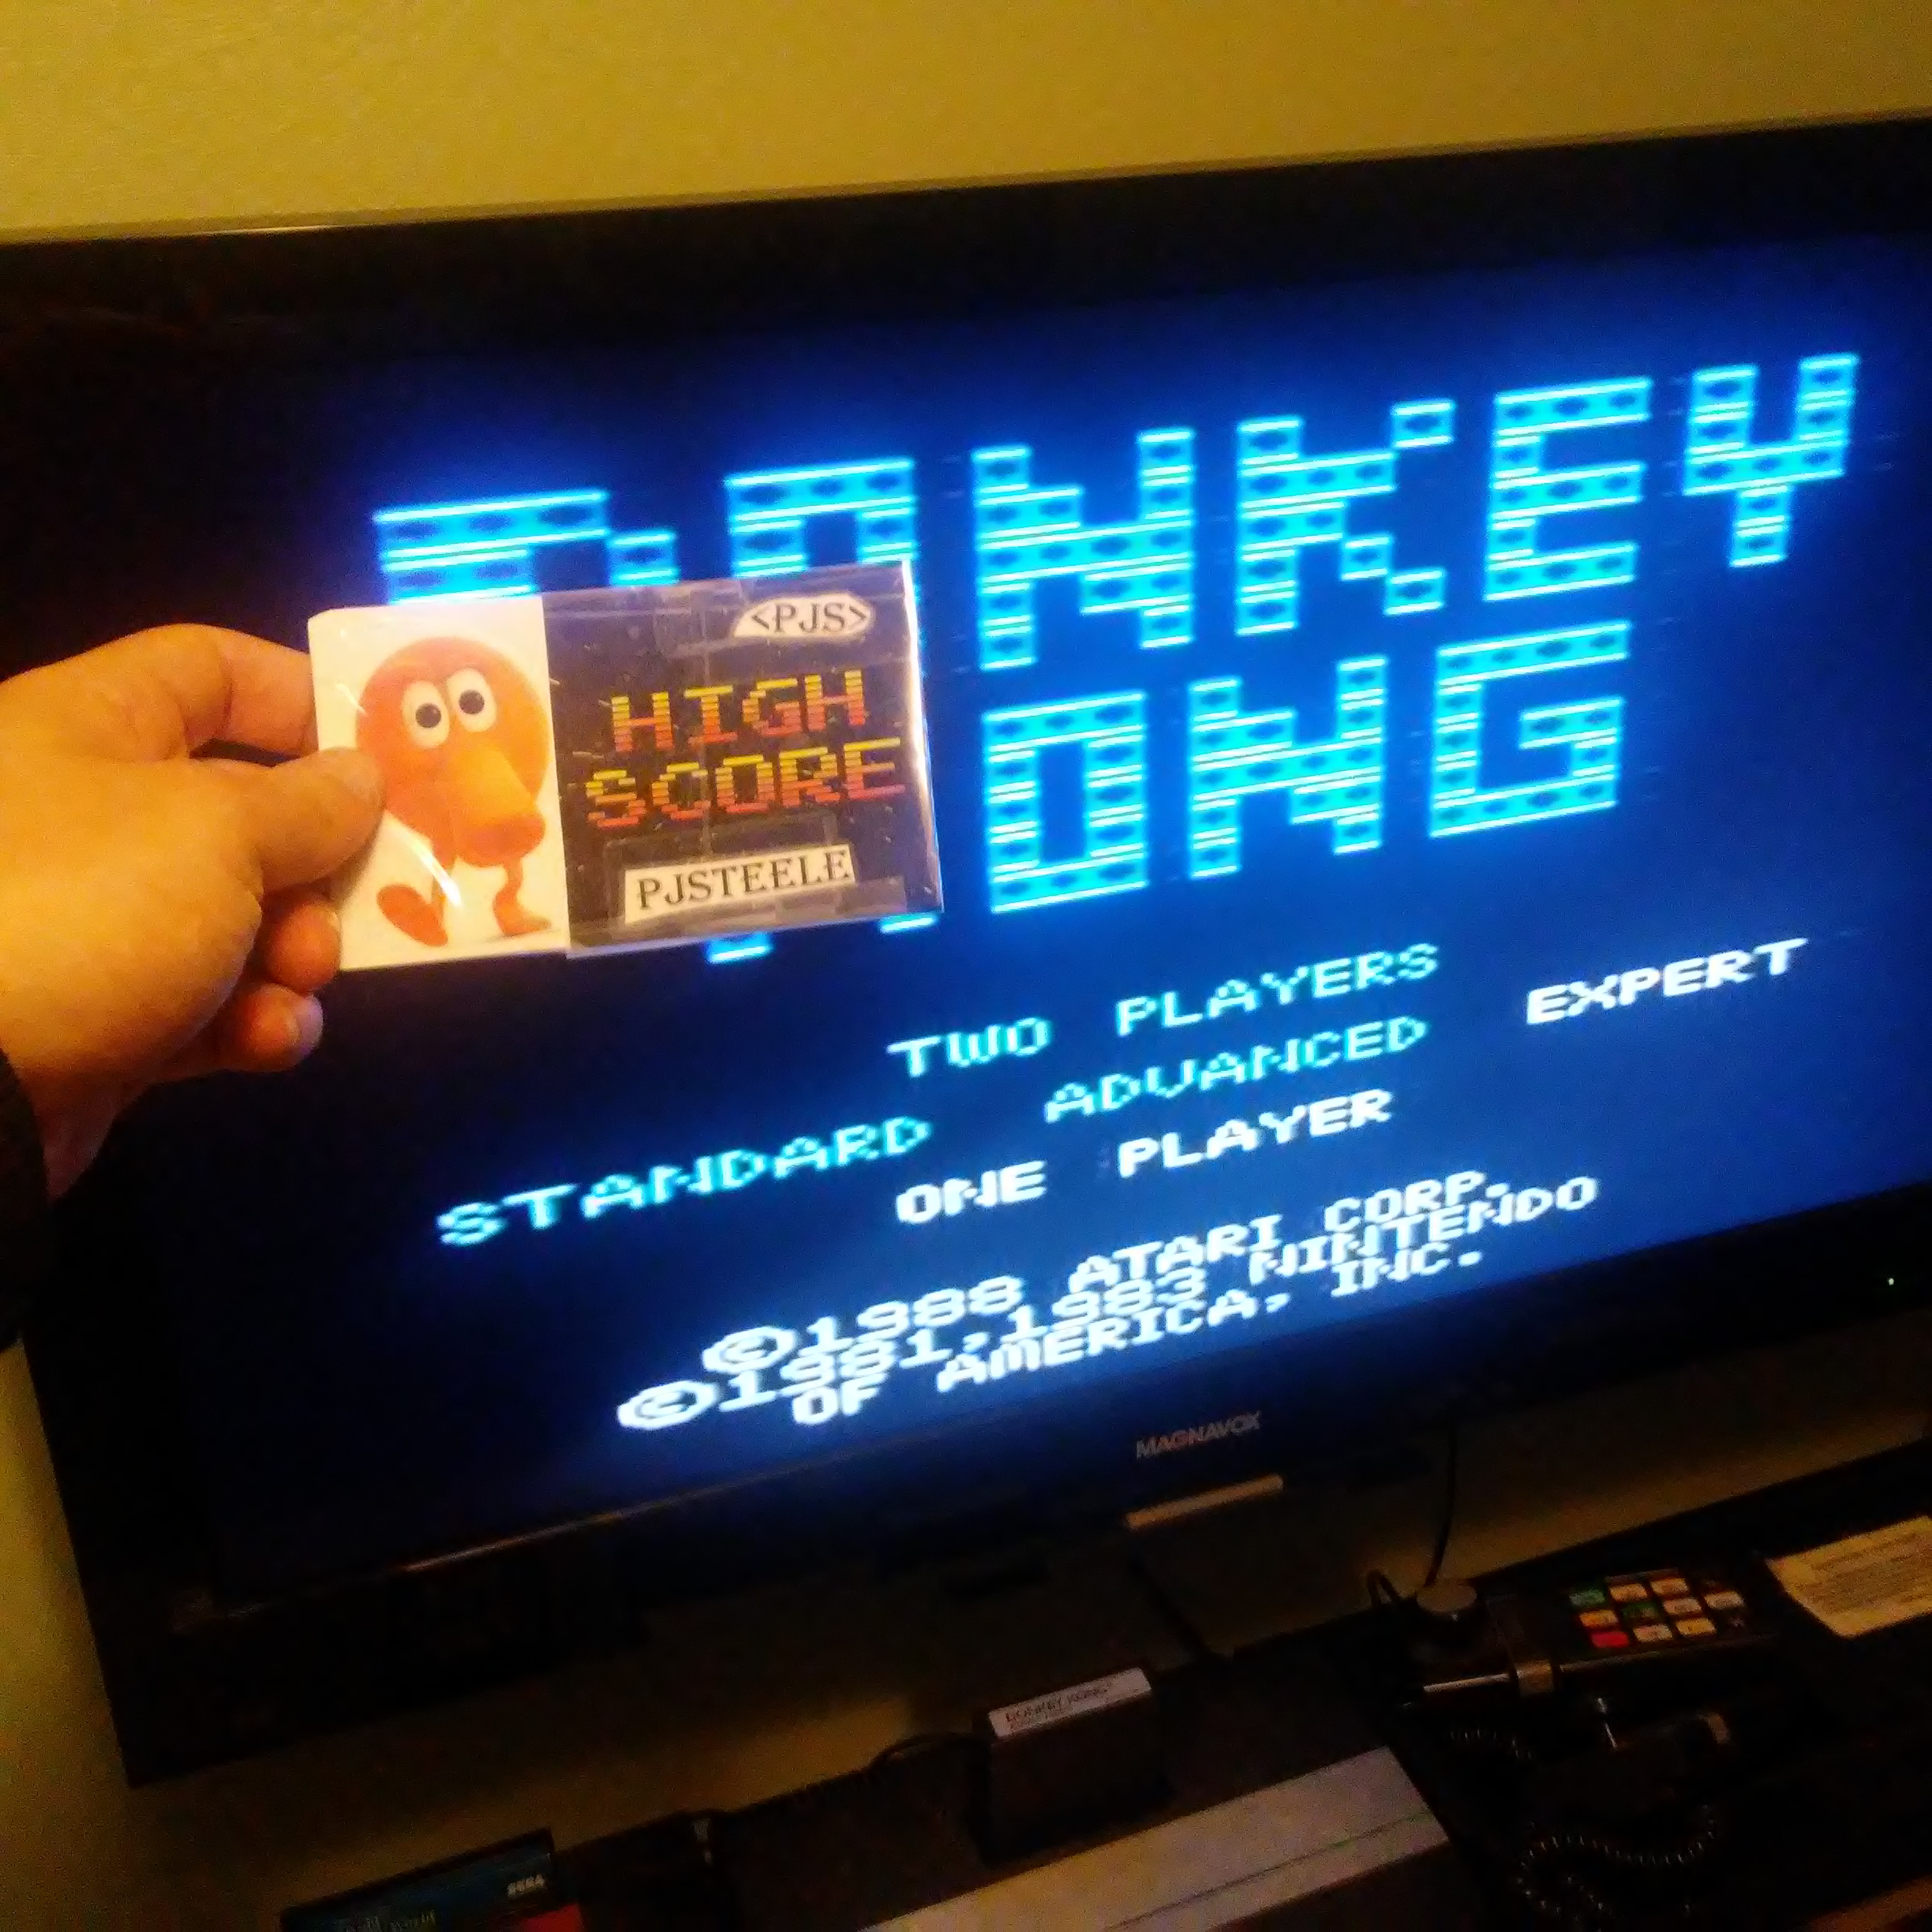 Donkey Kong: Expert 76,700 points